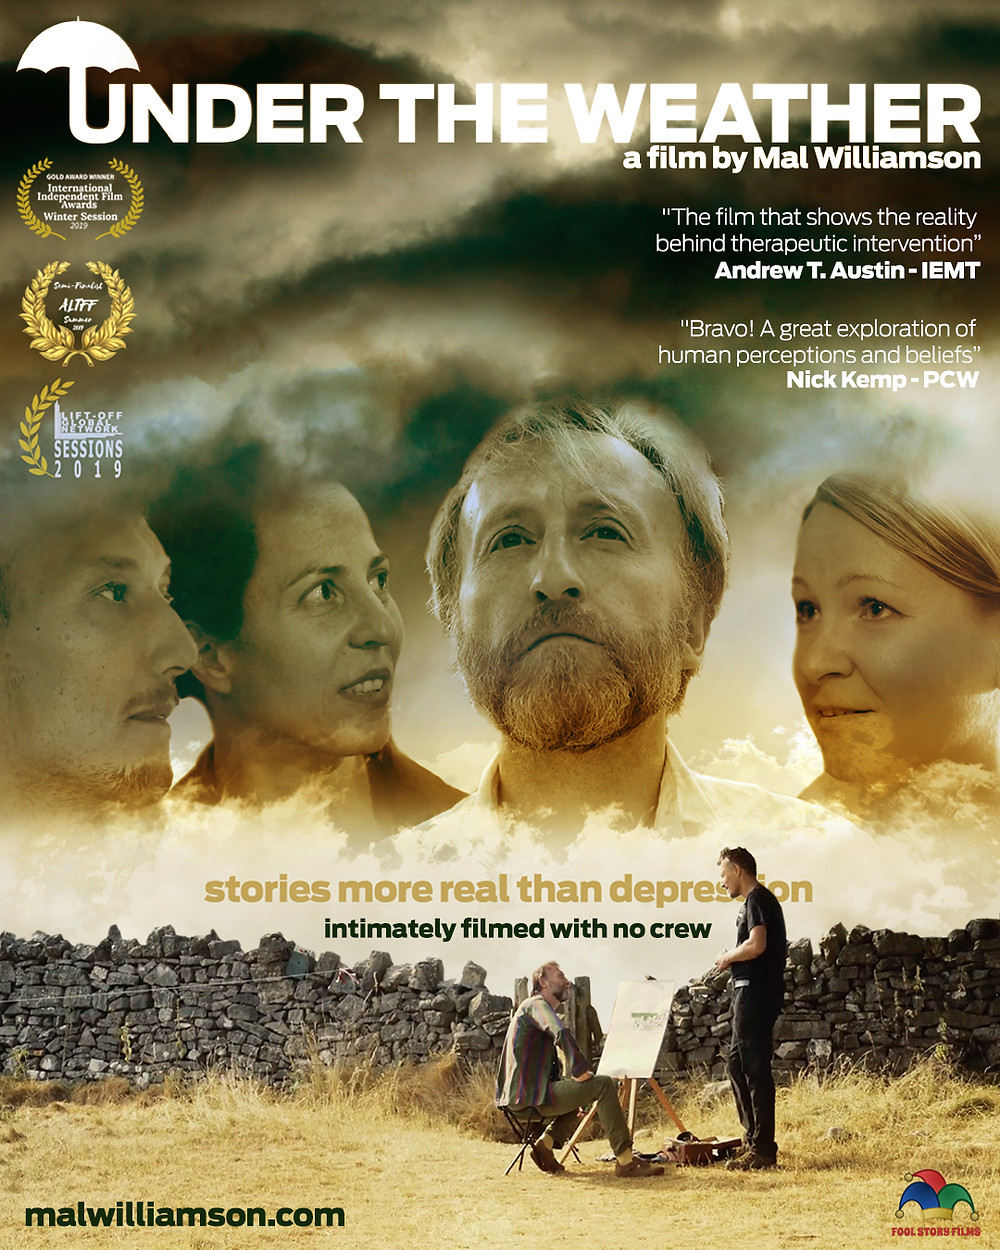 Poster for Under The Weather showing protagonists.